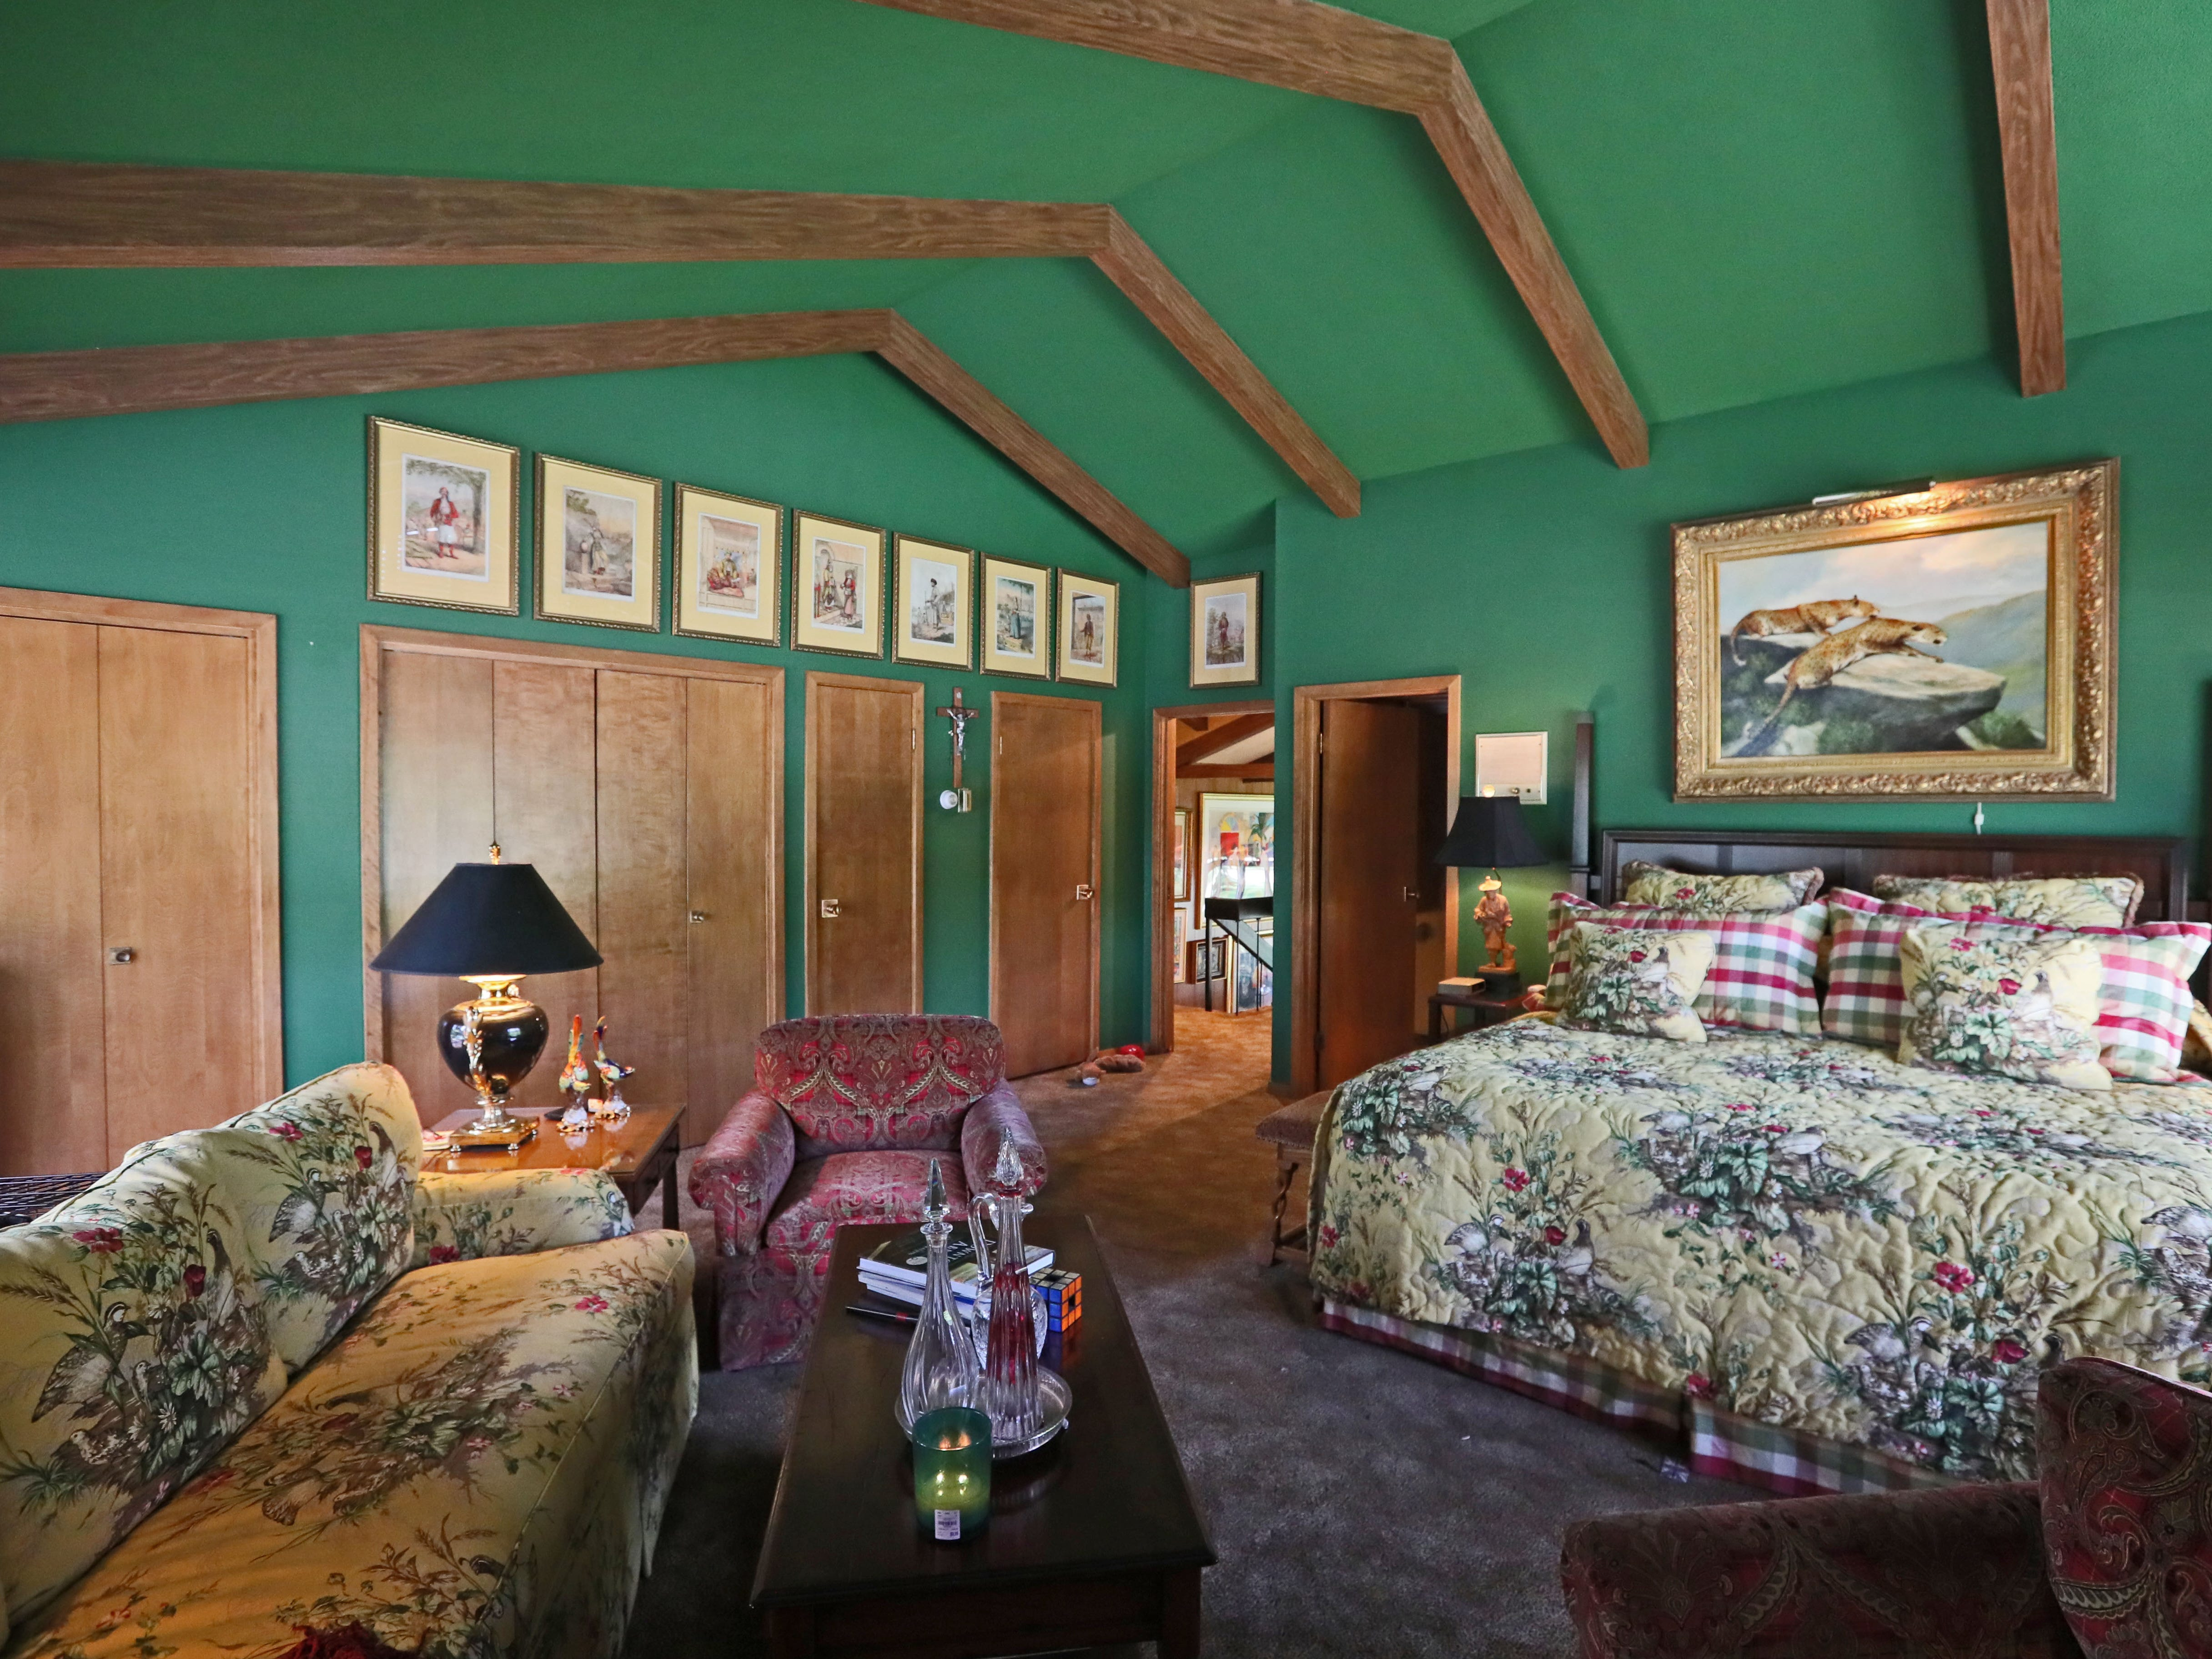 The master bedroom is done in bright green. Vaulted ceilings appear throughout the house.